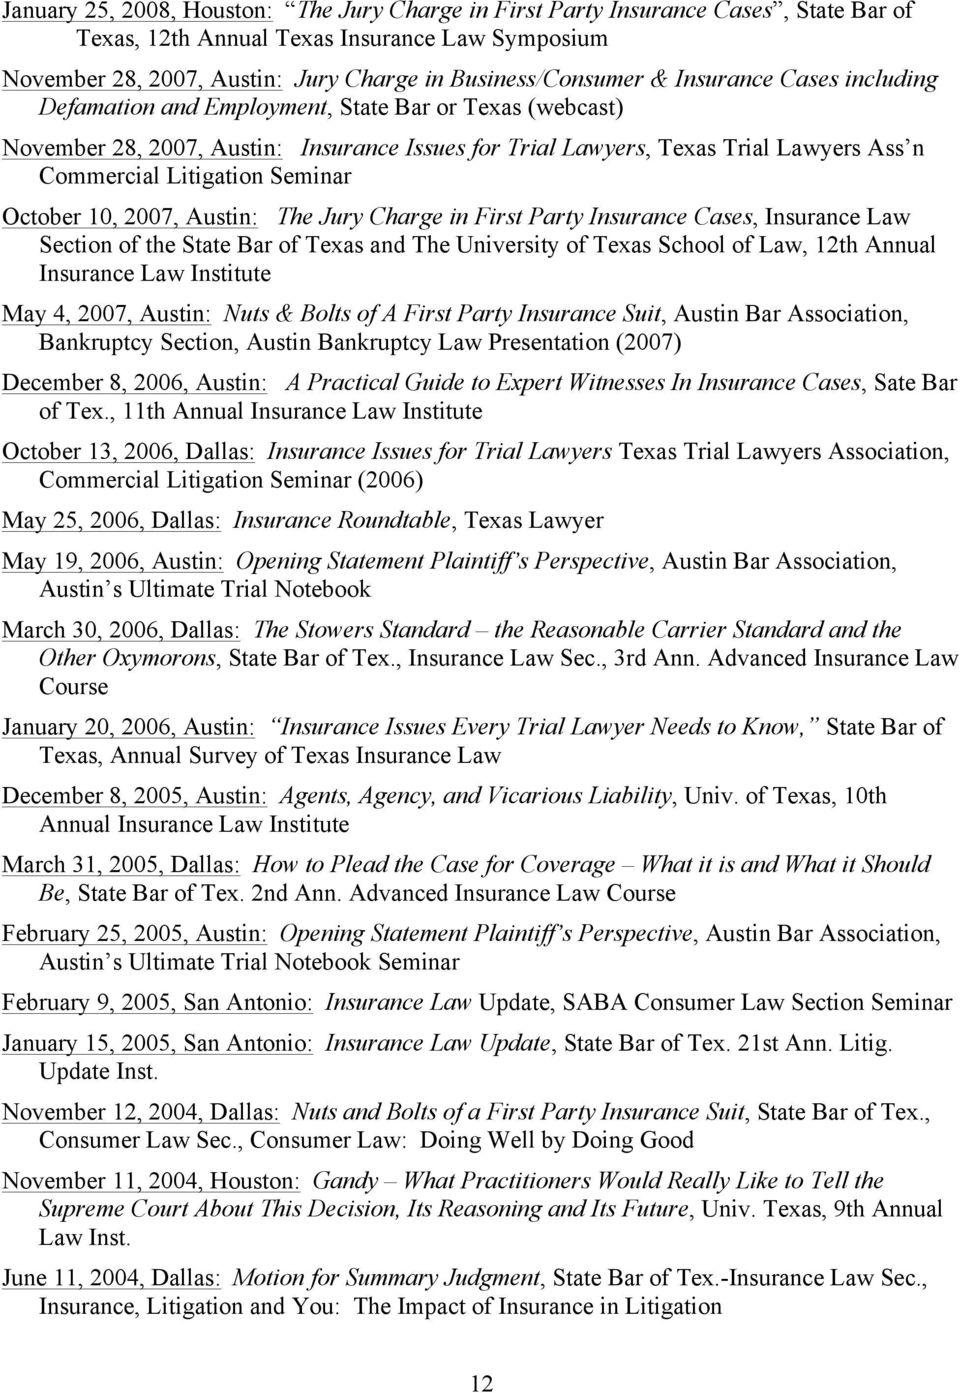 Seminar October 10, 2007, Austin: The Jury Charge in First Party Insurance Cases, Insurance Law Section of the State Bar of Texas and The University of Texas School of Law, 12th Annual Insurance Law